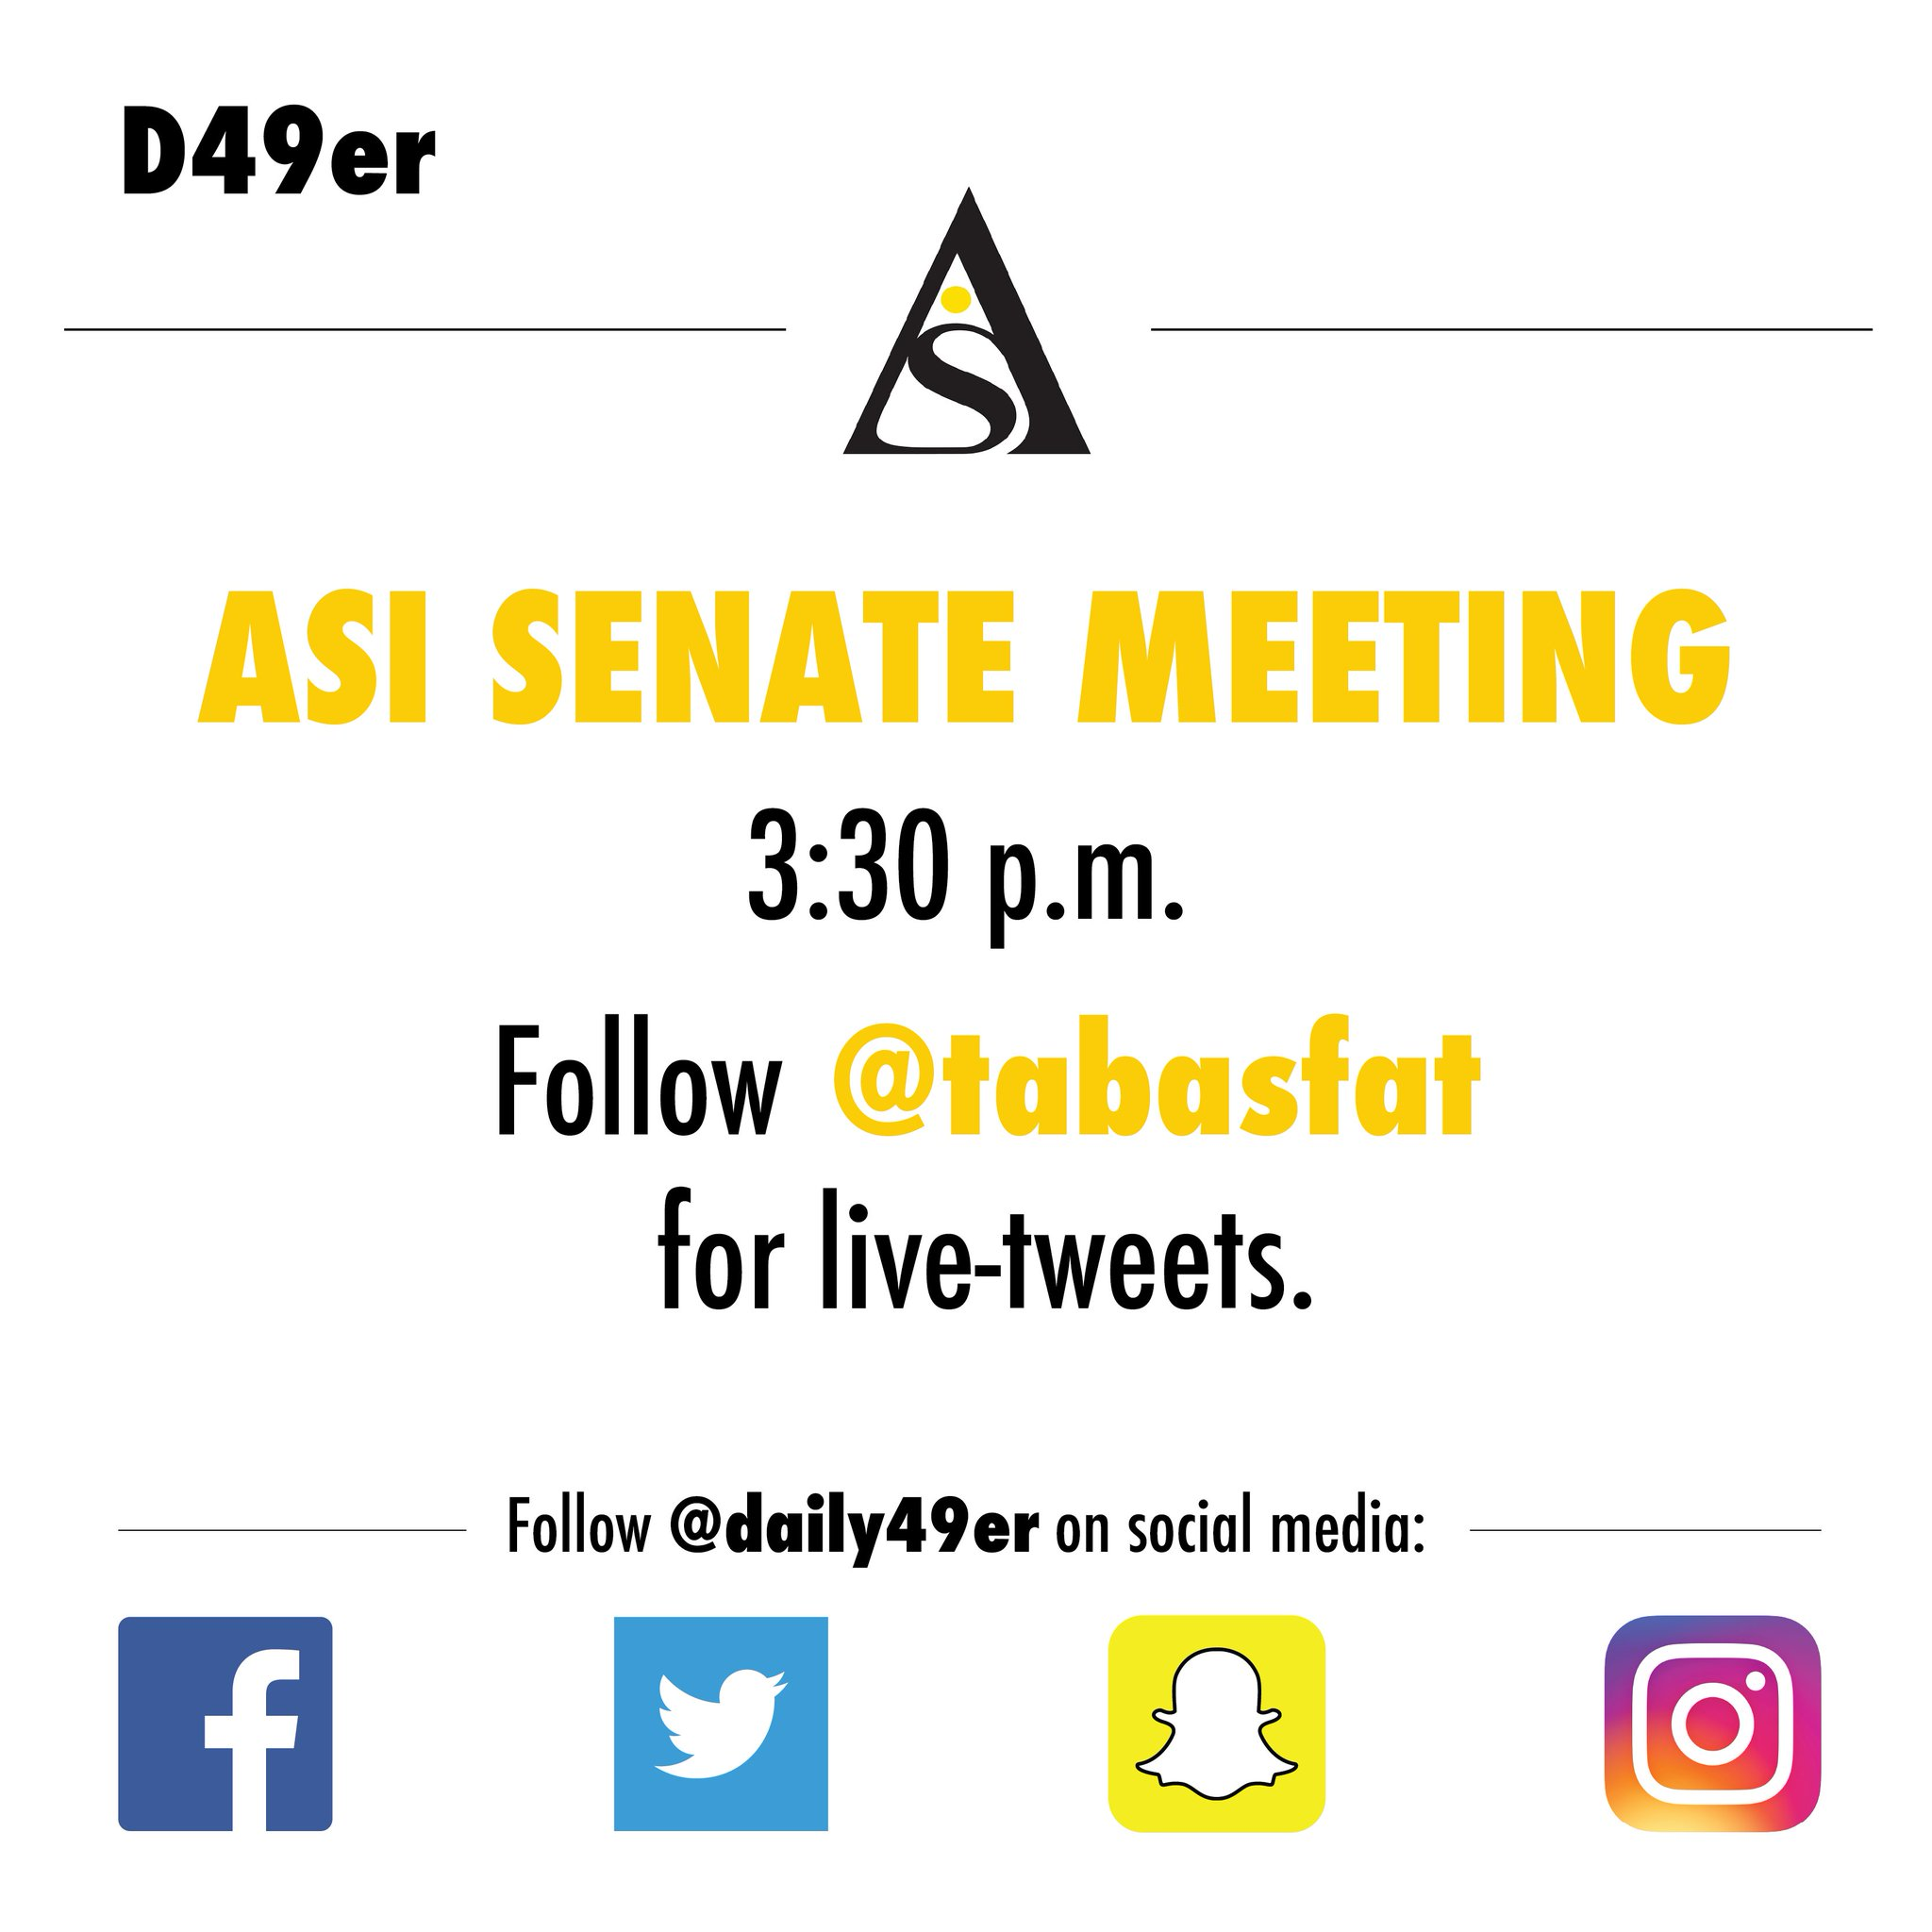 Want the latest from @CSULBASI?  Follow our writer @tabasfat today at 3:30 for live updates from their meeting. #CSULB #49erNow https://t.co/CdIVJOiUtj